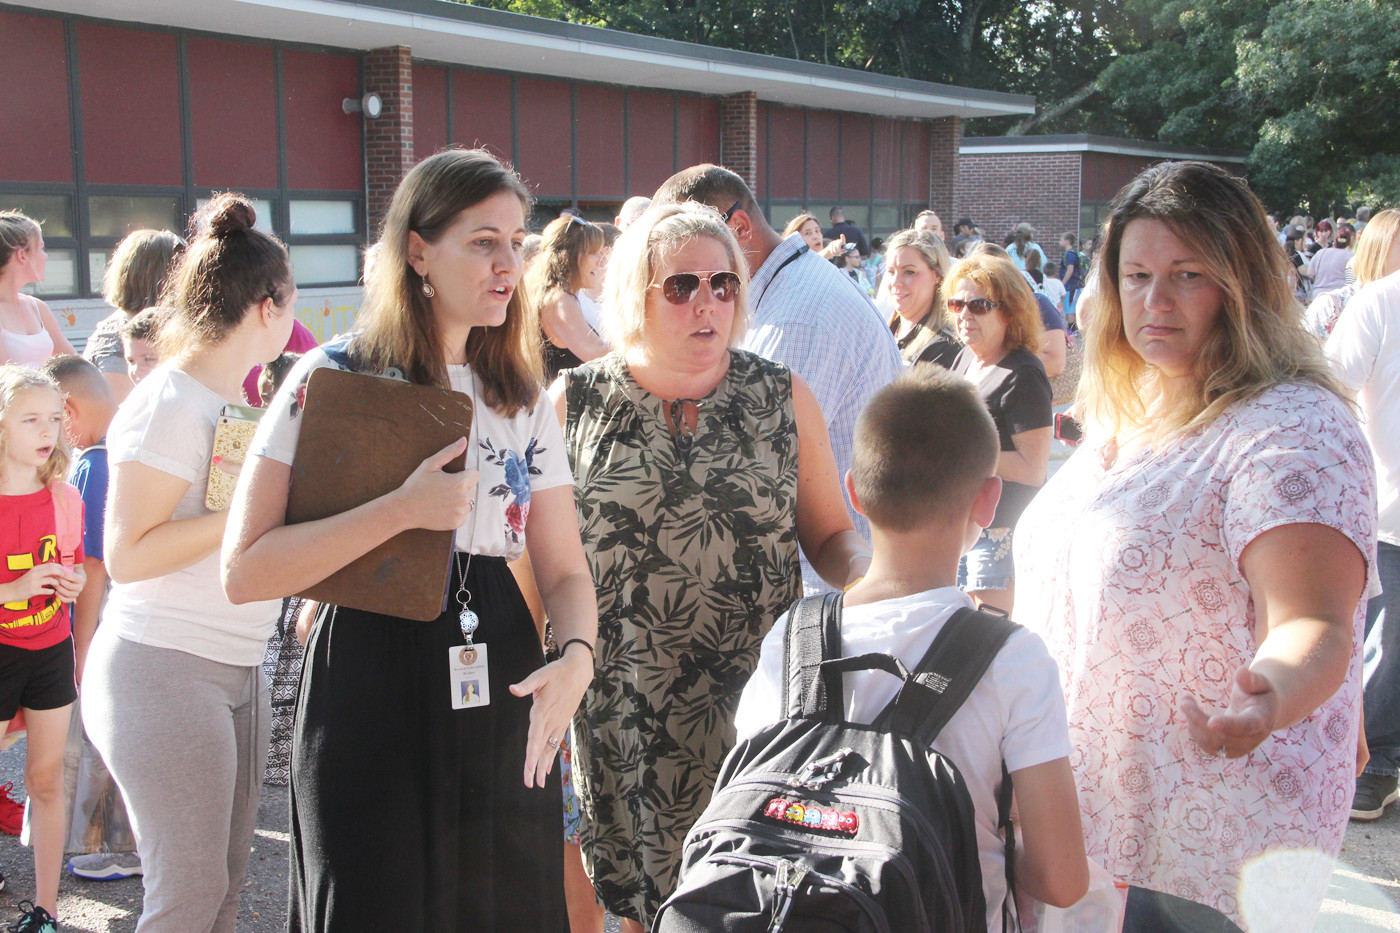 DIRECTING STUDENTS: Sherman school third grade teacher Kaitlyn Wallace is joined by PTO President Karin Kavanagh in the schoolyard to help students find their class.